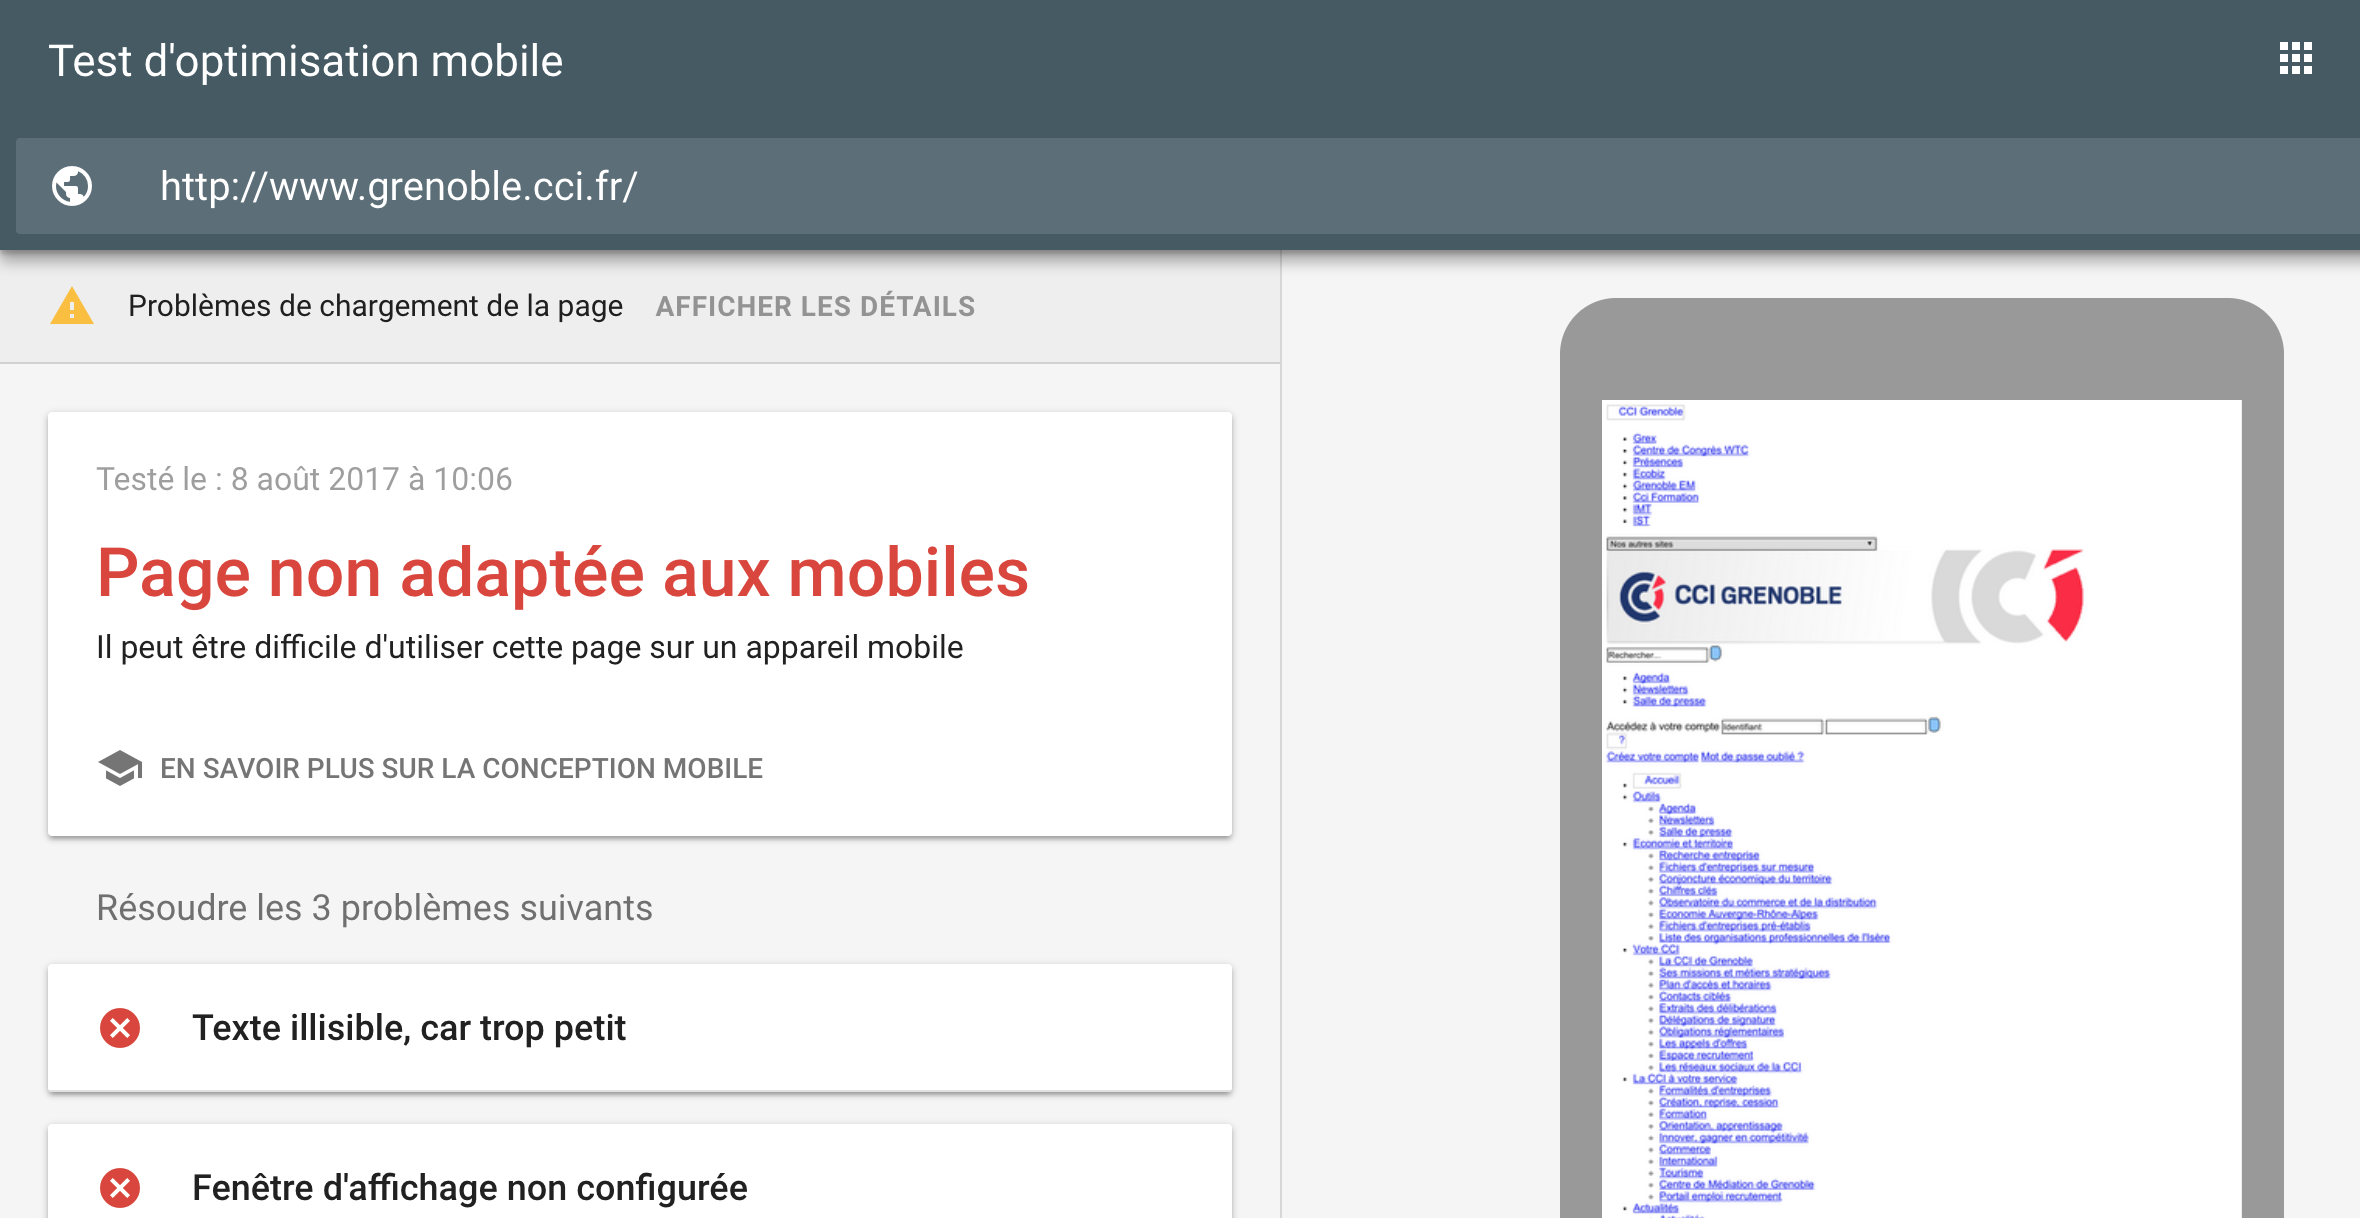 Test d'optimisation mobile de Google, résultats - site web adapté au mobile